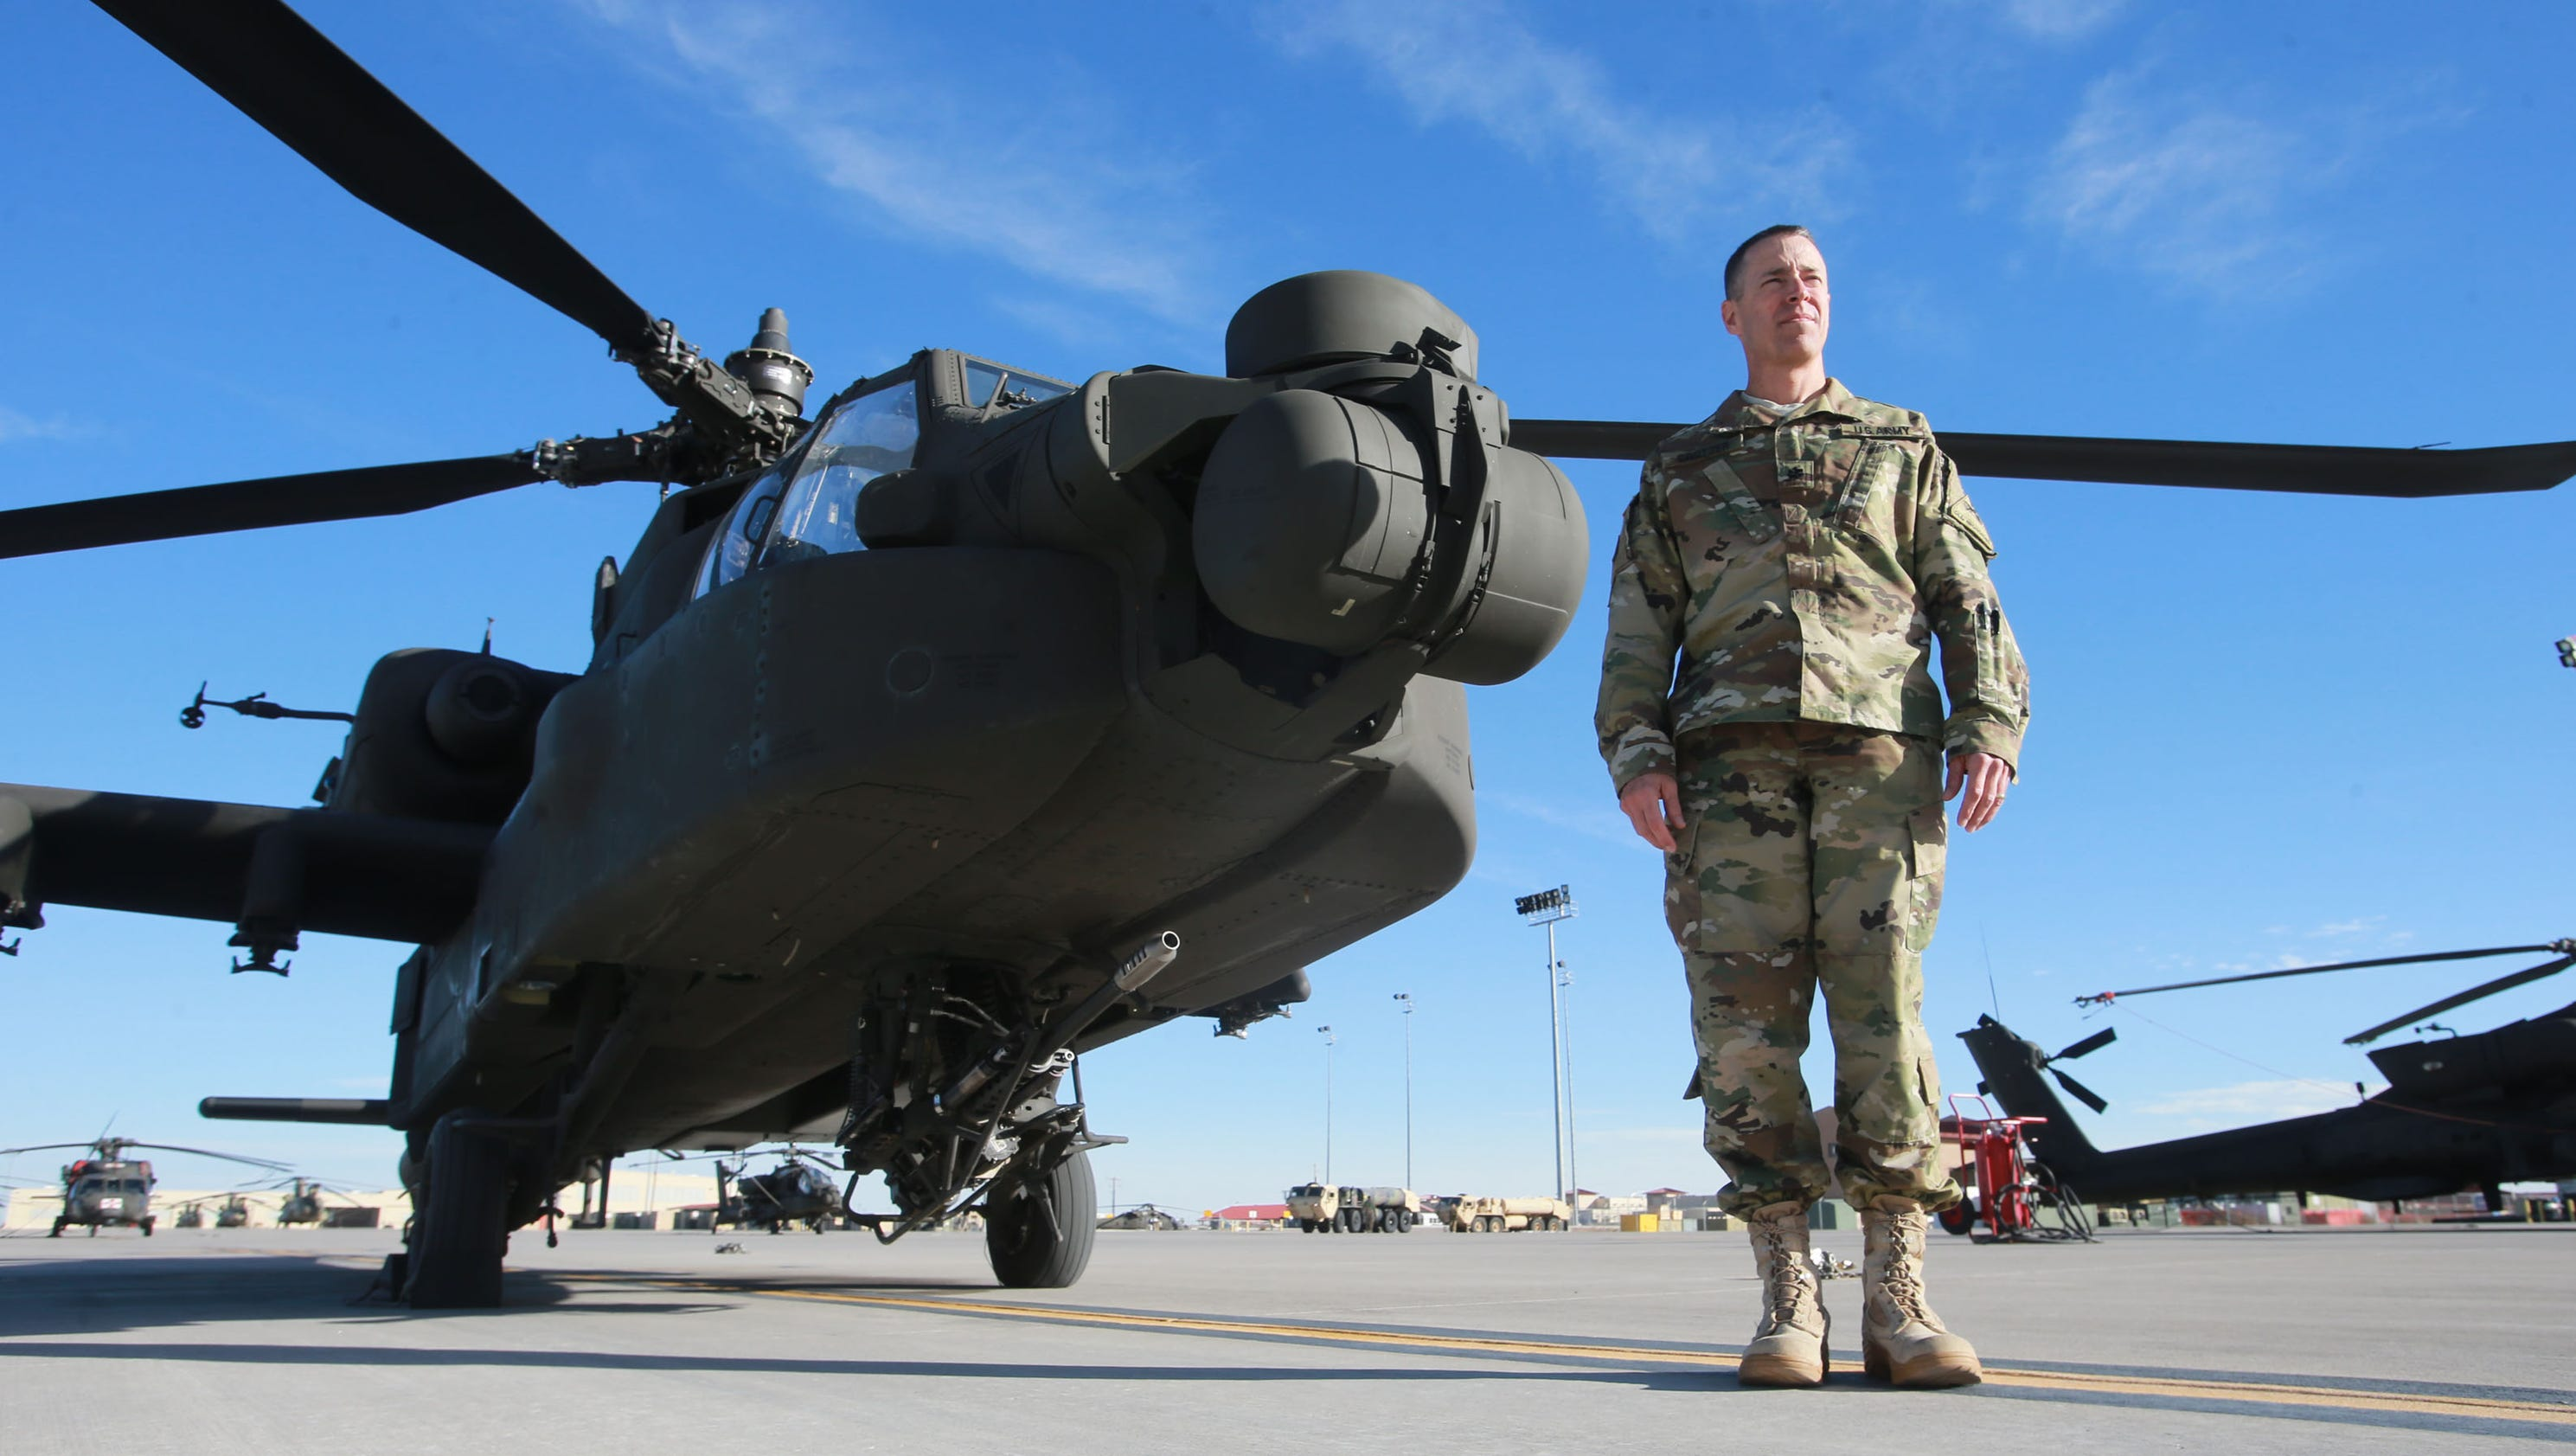 400 Bliss soldiers, 24 helicopters set for Europe